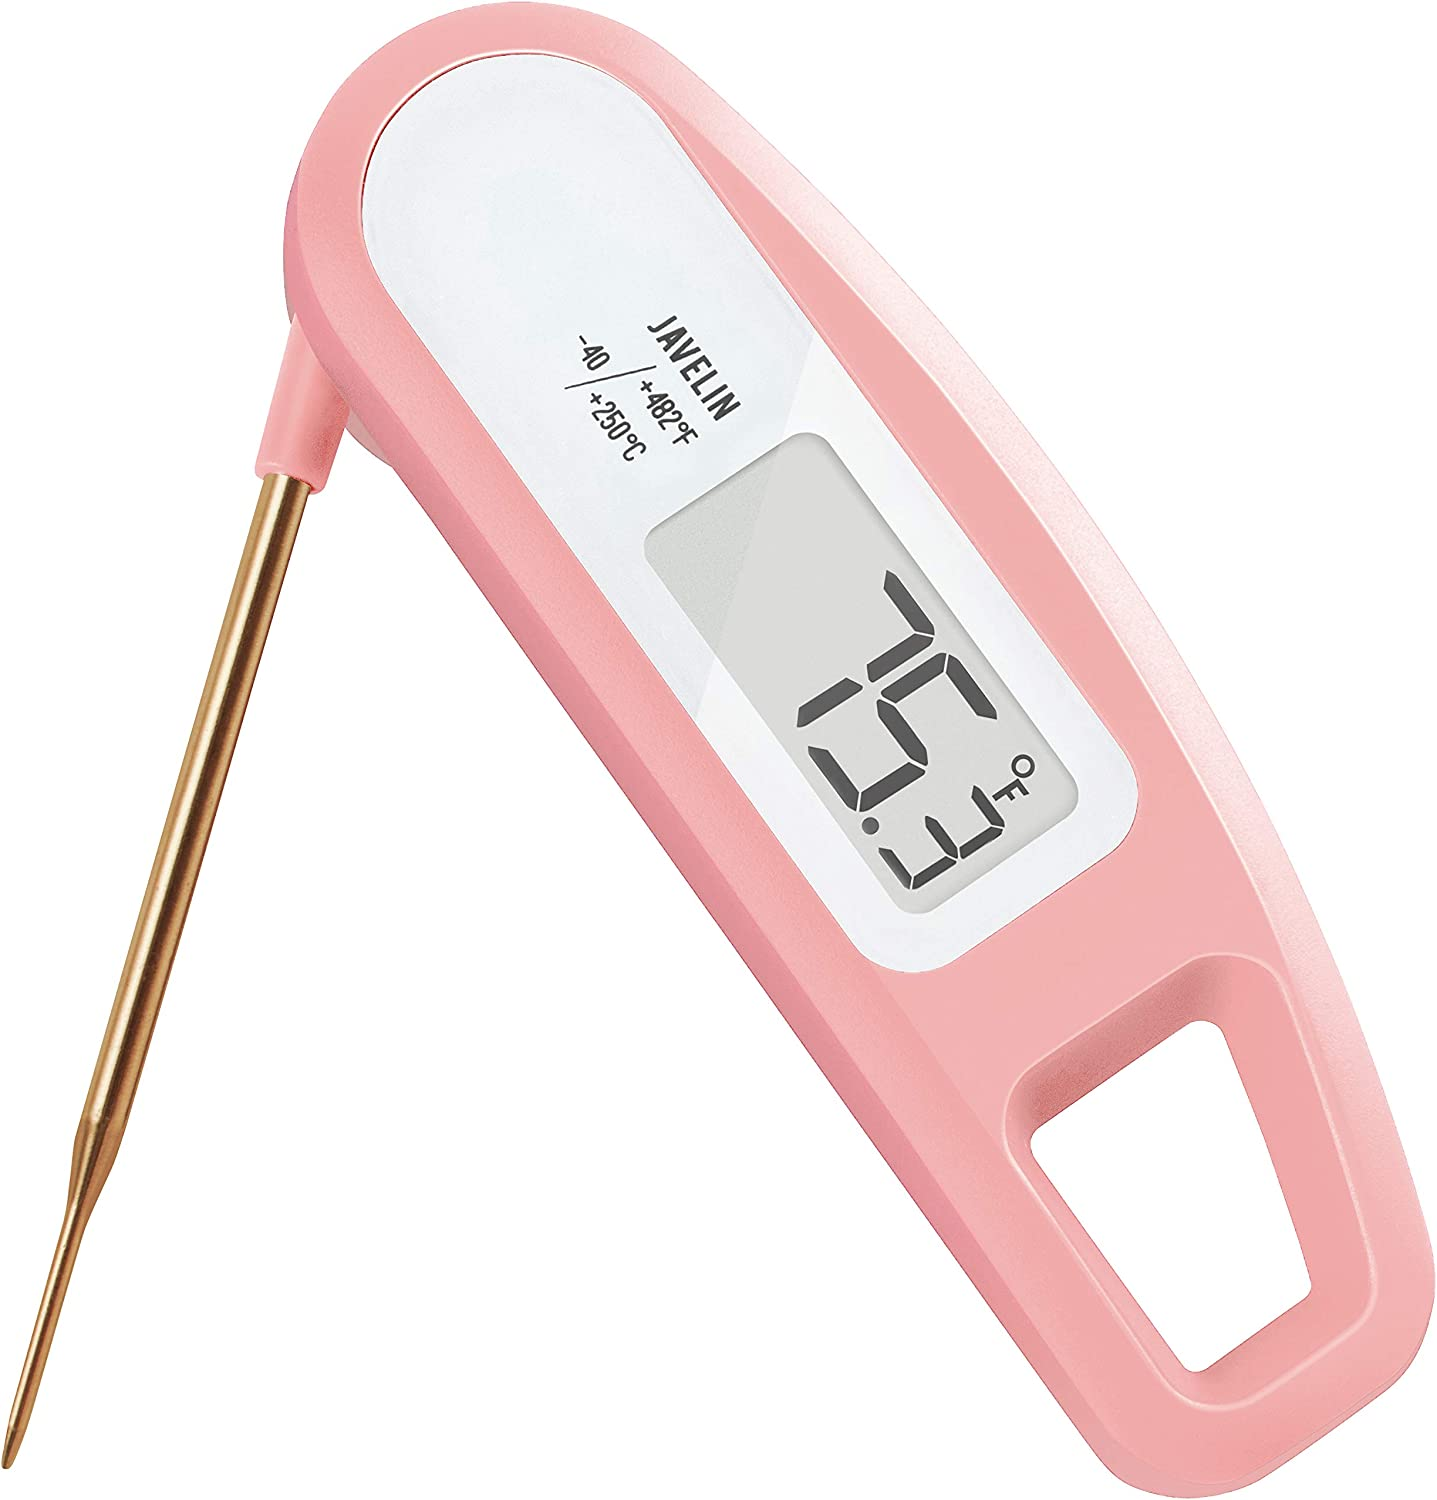 Lavatools PT12 Javelin Digital Instant Read Meat Thermometer for Kitchen, Food Cooking, Grill, BBQ, Smoker, Candy, Home Brewing, Coffee, and Oil Deep Frying (Rose)